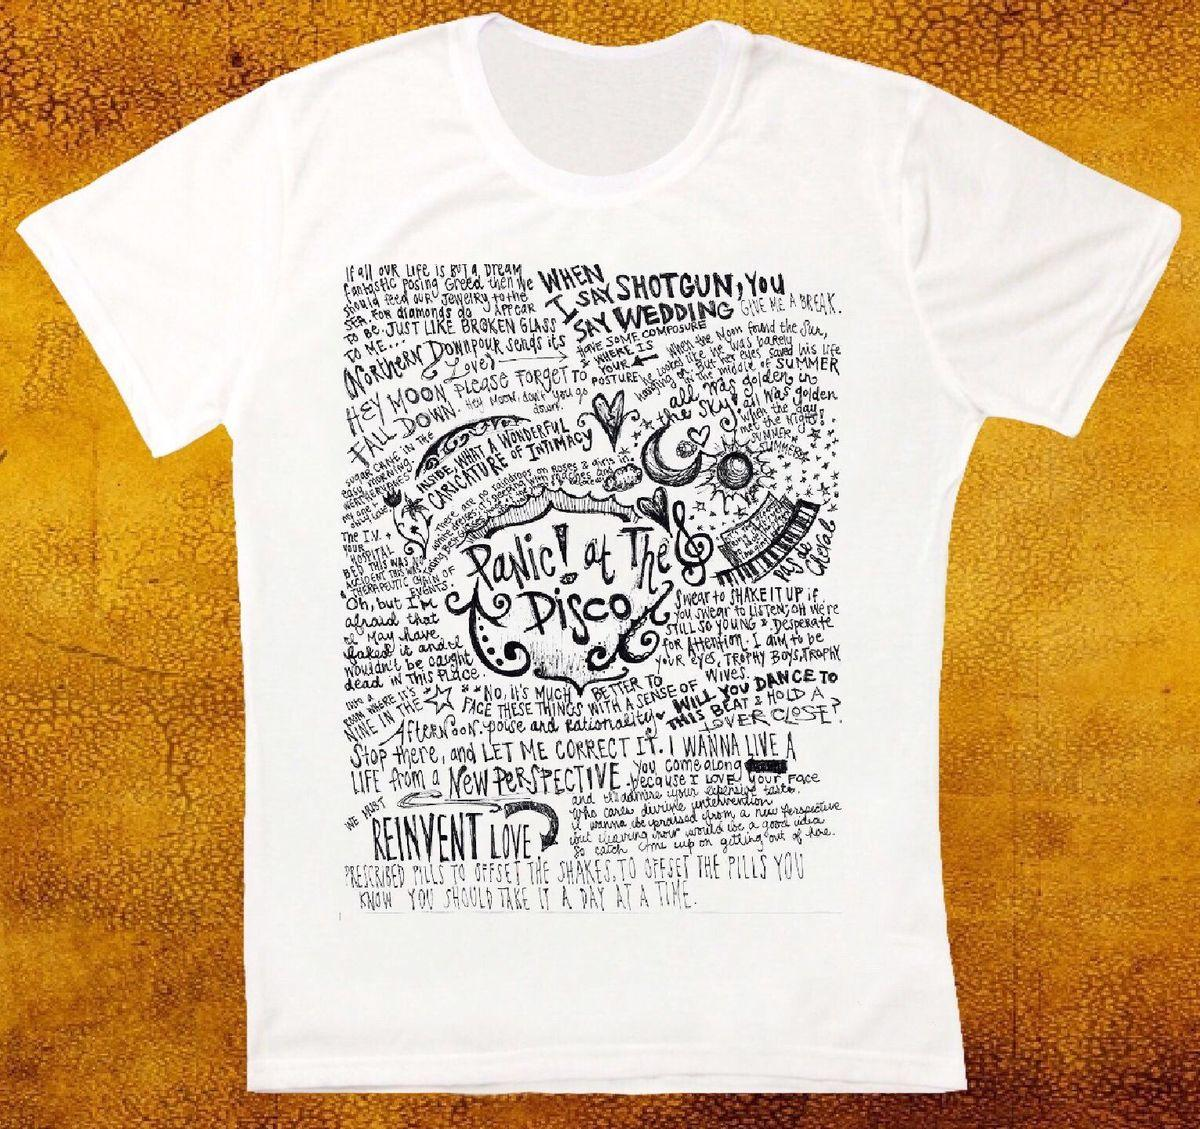 cff07d992b6b2 PANIC AT THE DISCO BAND LYRICS COOL RETRO VINTAGE HIPSTER UNISEX T SHIRT T  Shirts Short Sleeve Leisure Fashion Summer Quirky T Shirt Designs Purchase T  ...